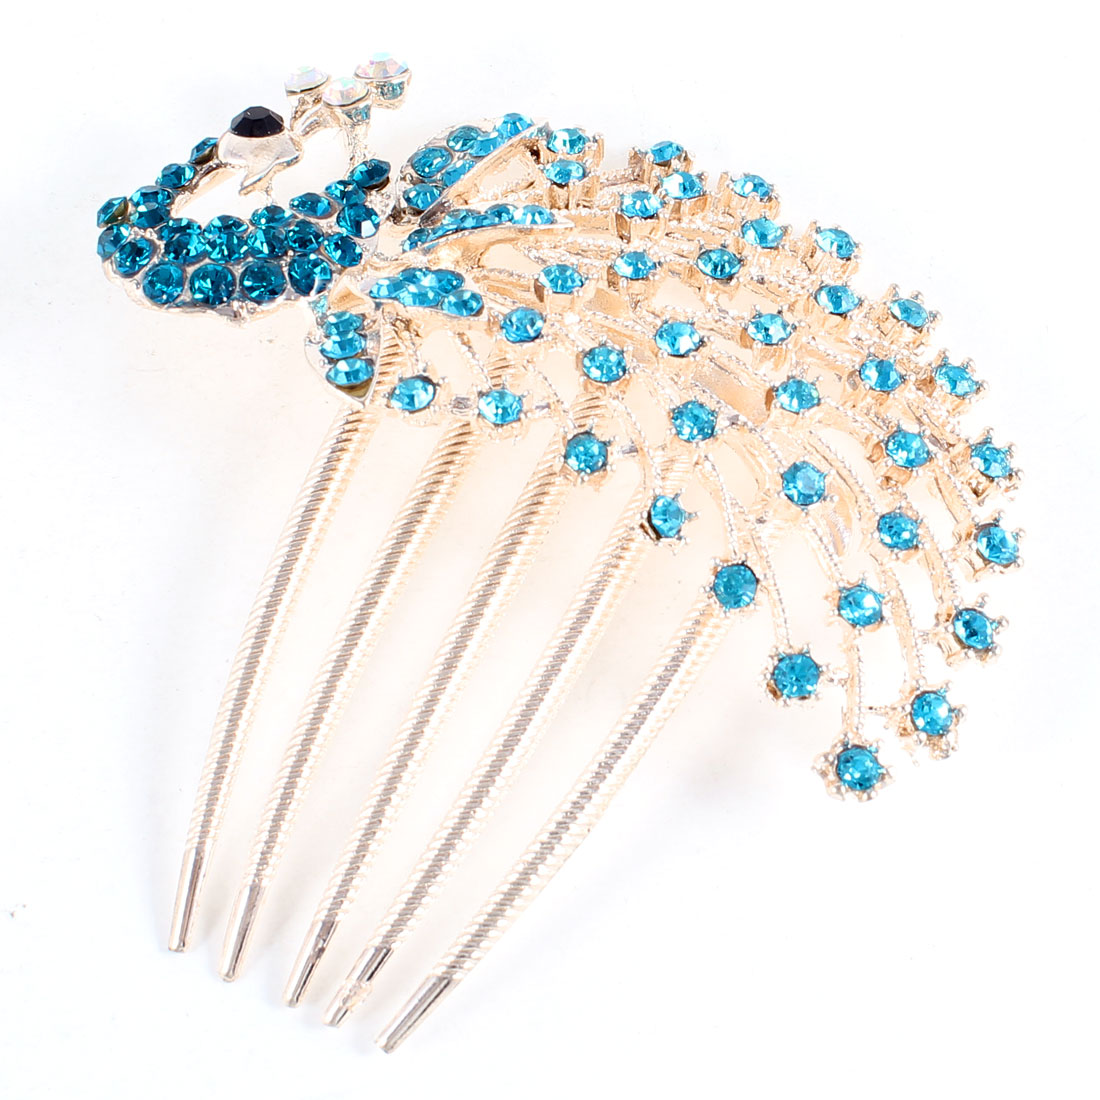 Teal Blue Rhinestone Inlaid Peacock Design 5 Teeth Hair Clip Comb for Ladies